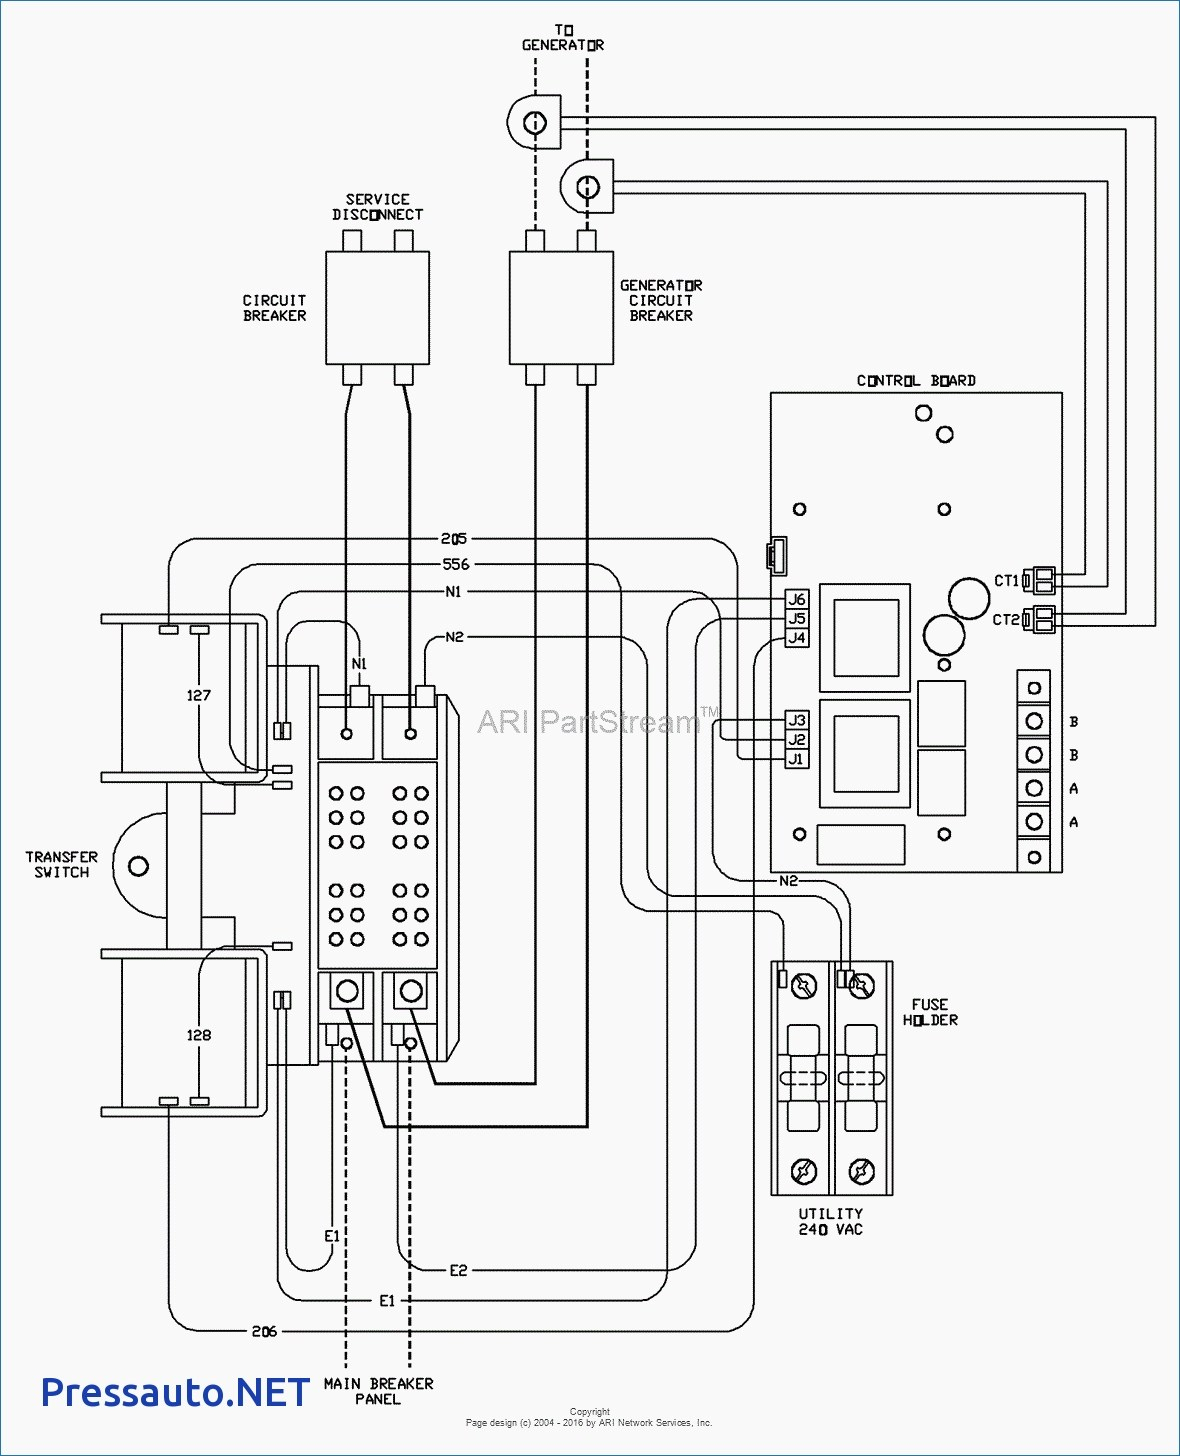 Wiring Diagram For Reliance Transfer Switch - Wiring Diagram Online - Reliance Generator Transfer Switch Wiring Diagram